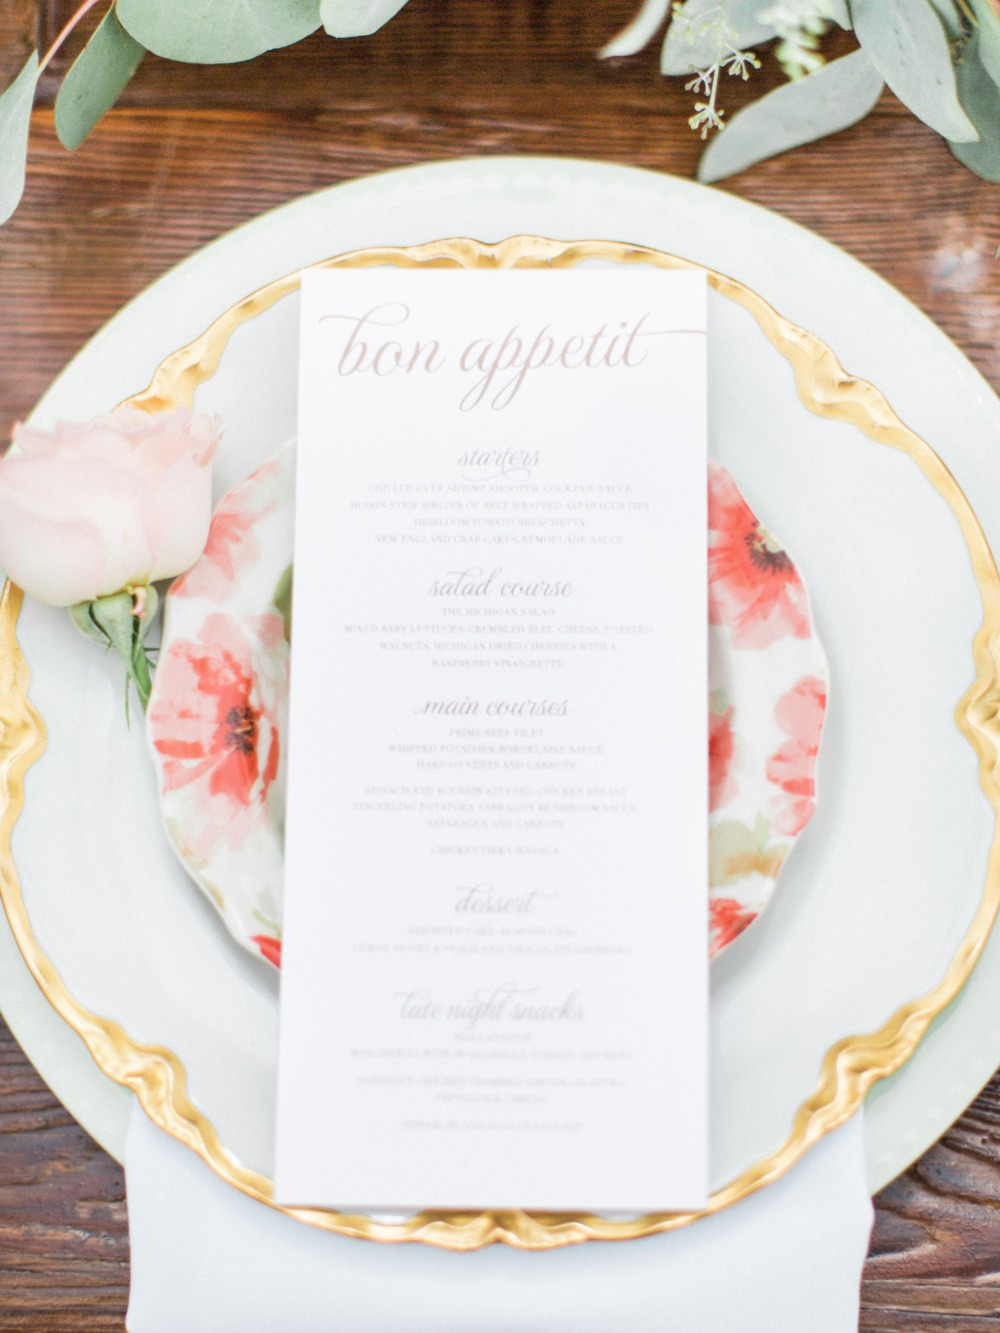 Wedding menu and placesetting details